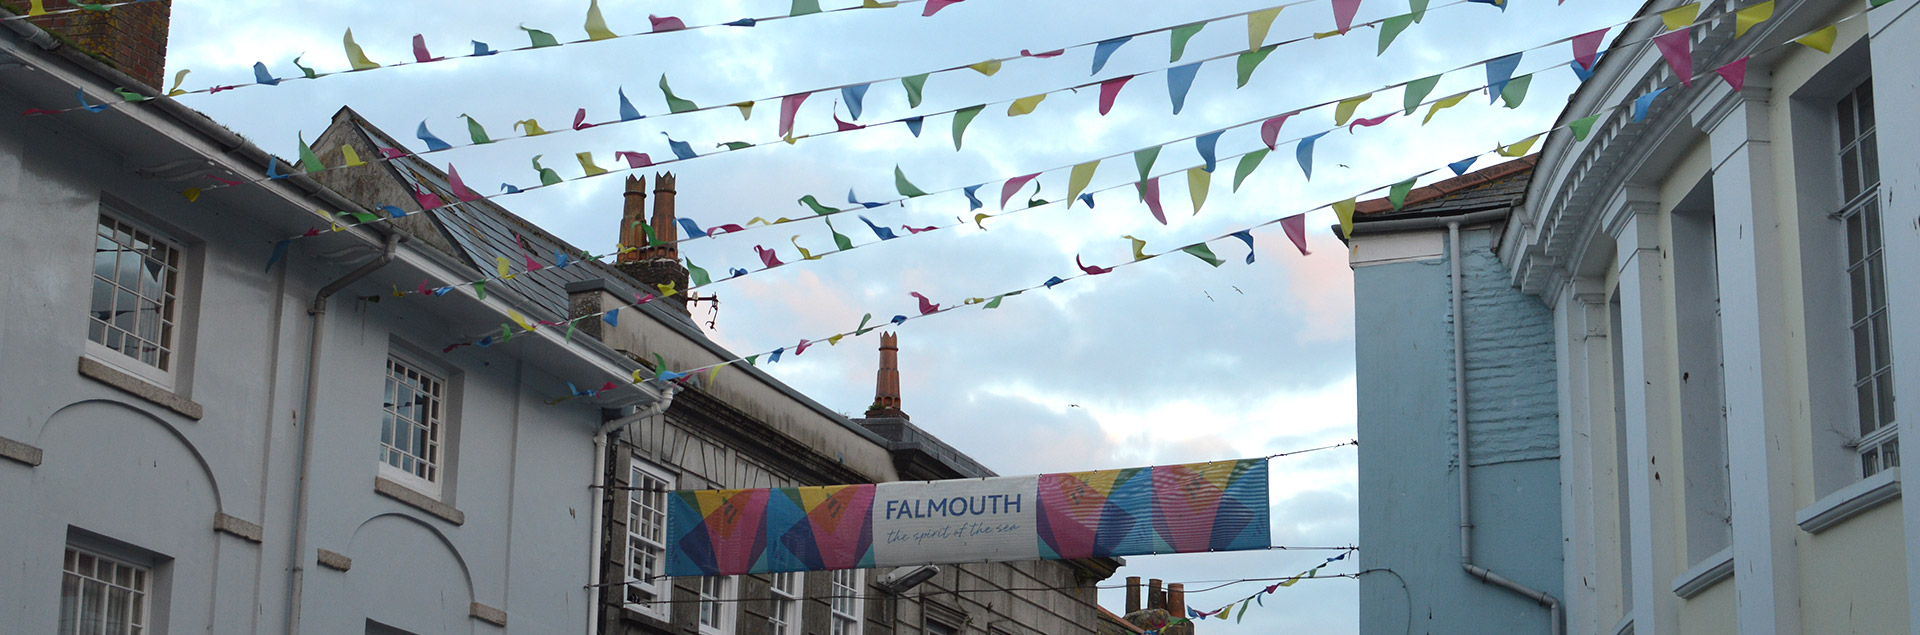 Things to do in Falmouth